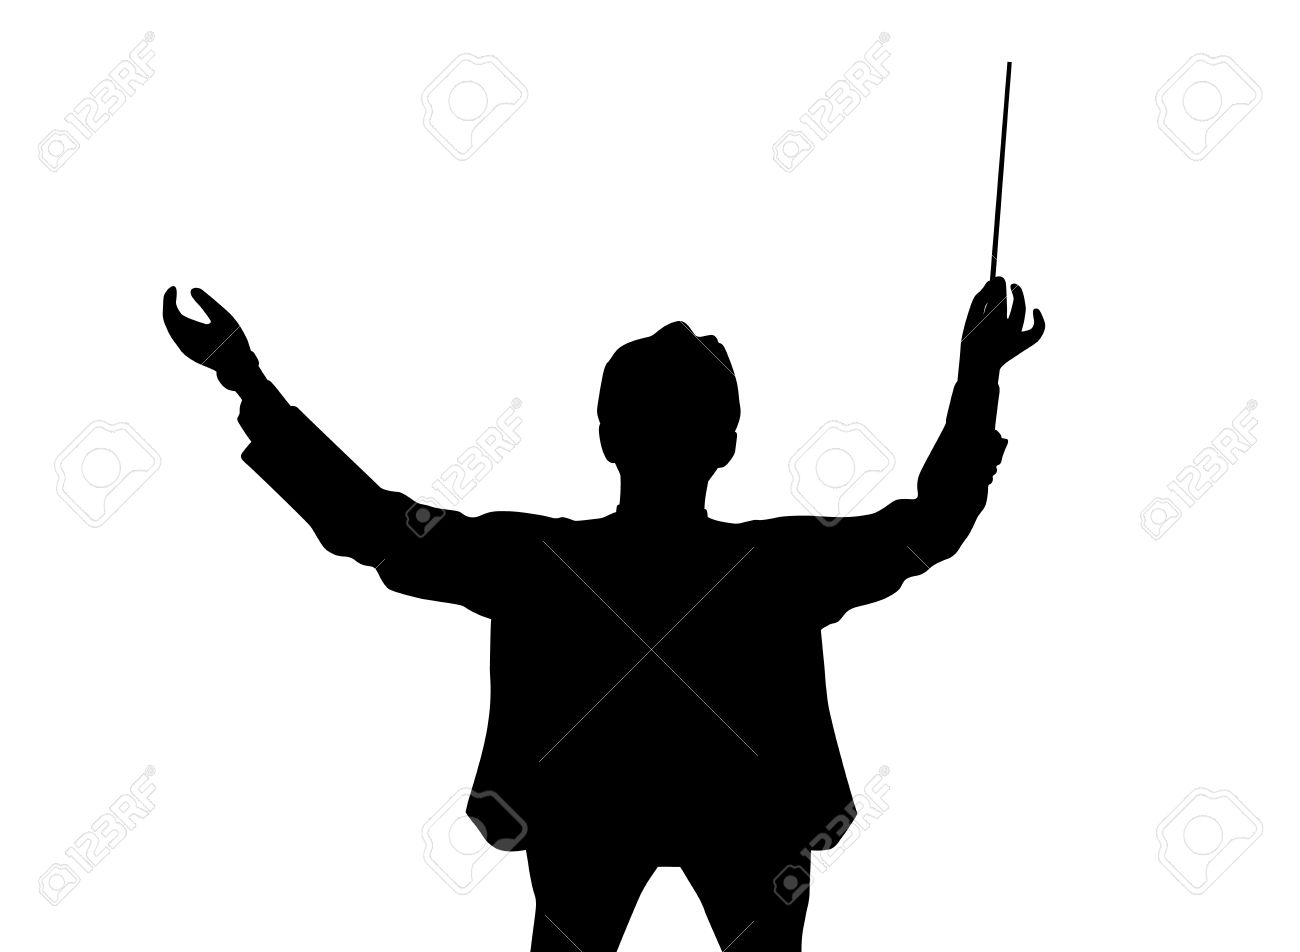 Music conductor back from a bird's eye view - 66081153